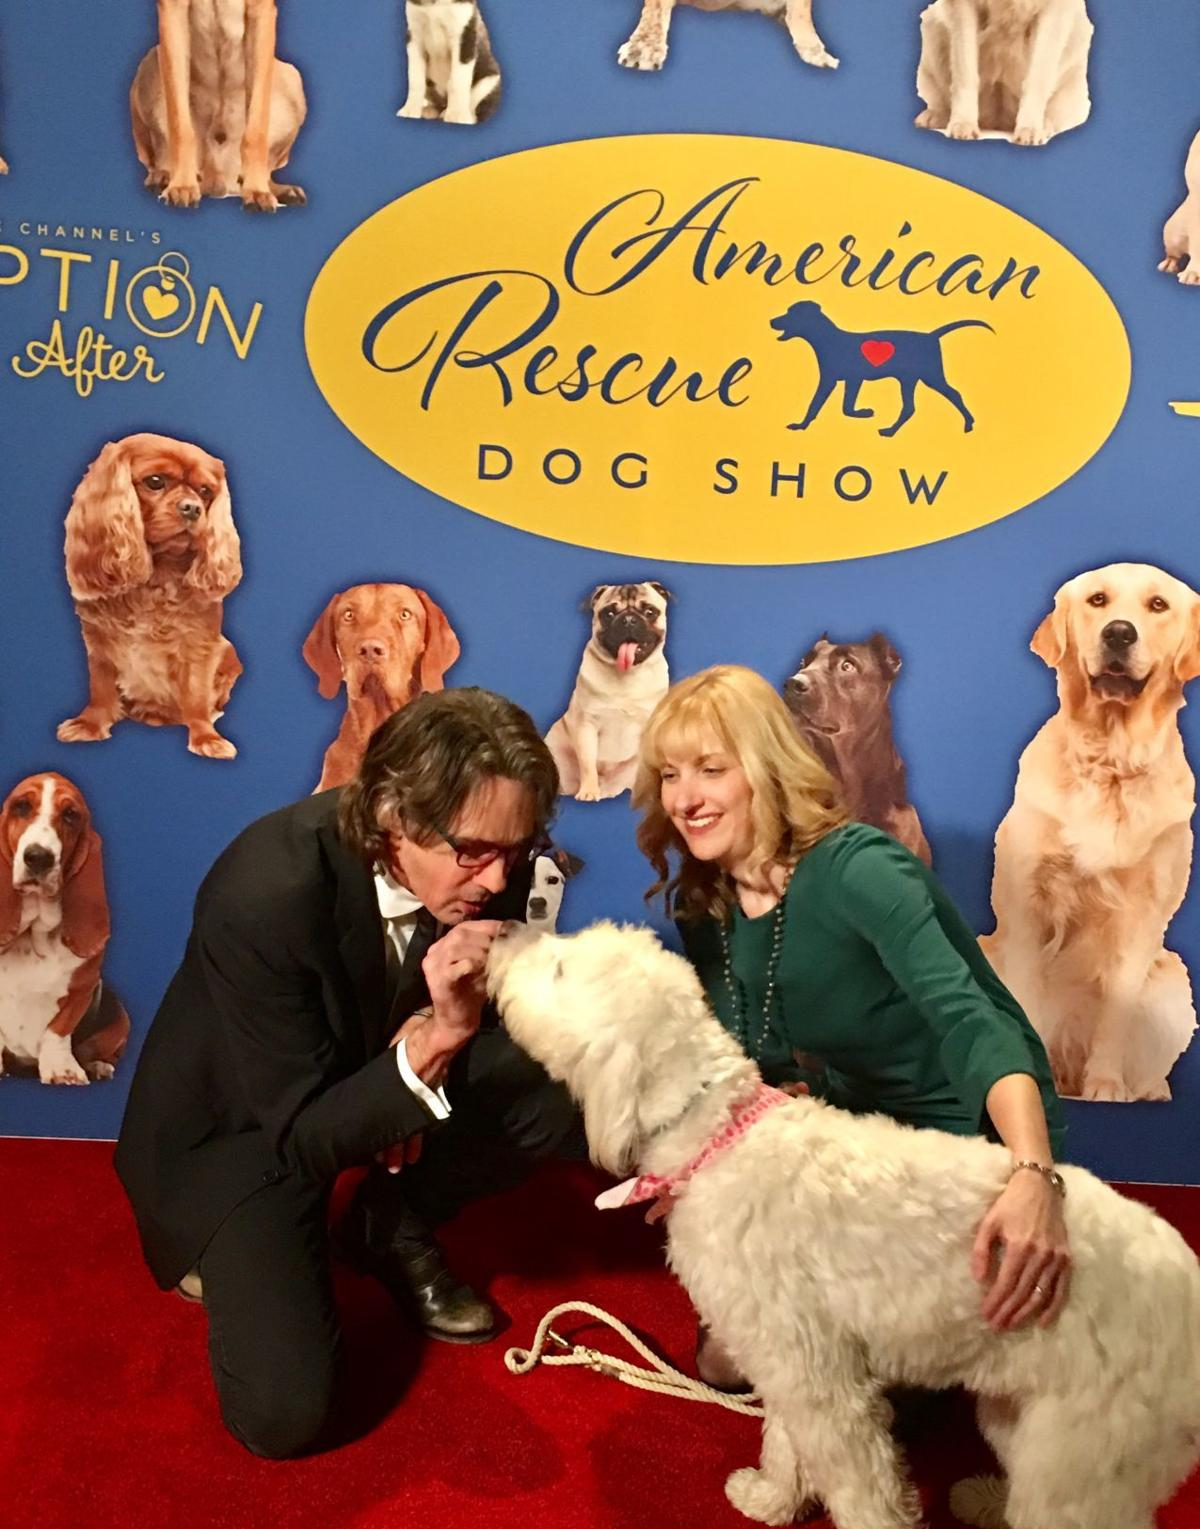 High Bridge woman executive produces 'American Rescue Dog Show' on Hallmark Channel